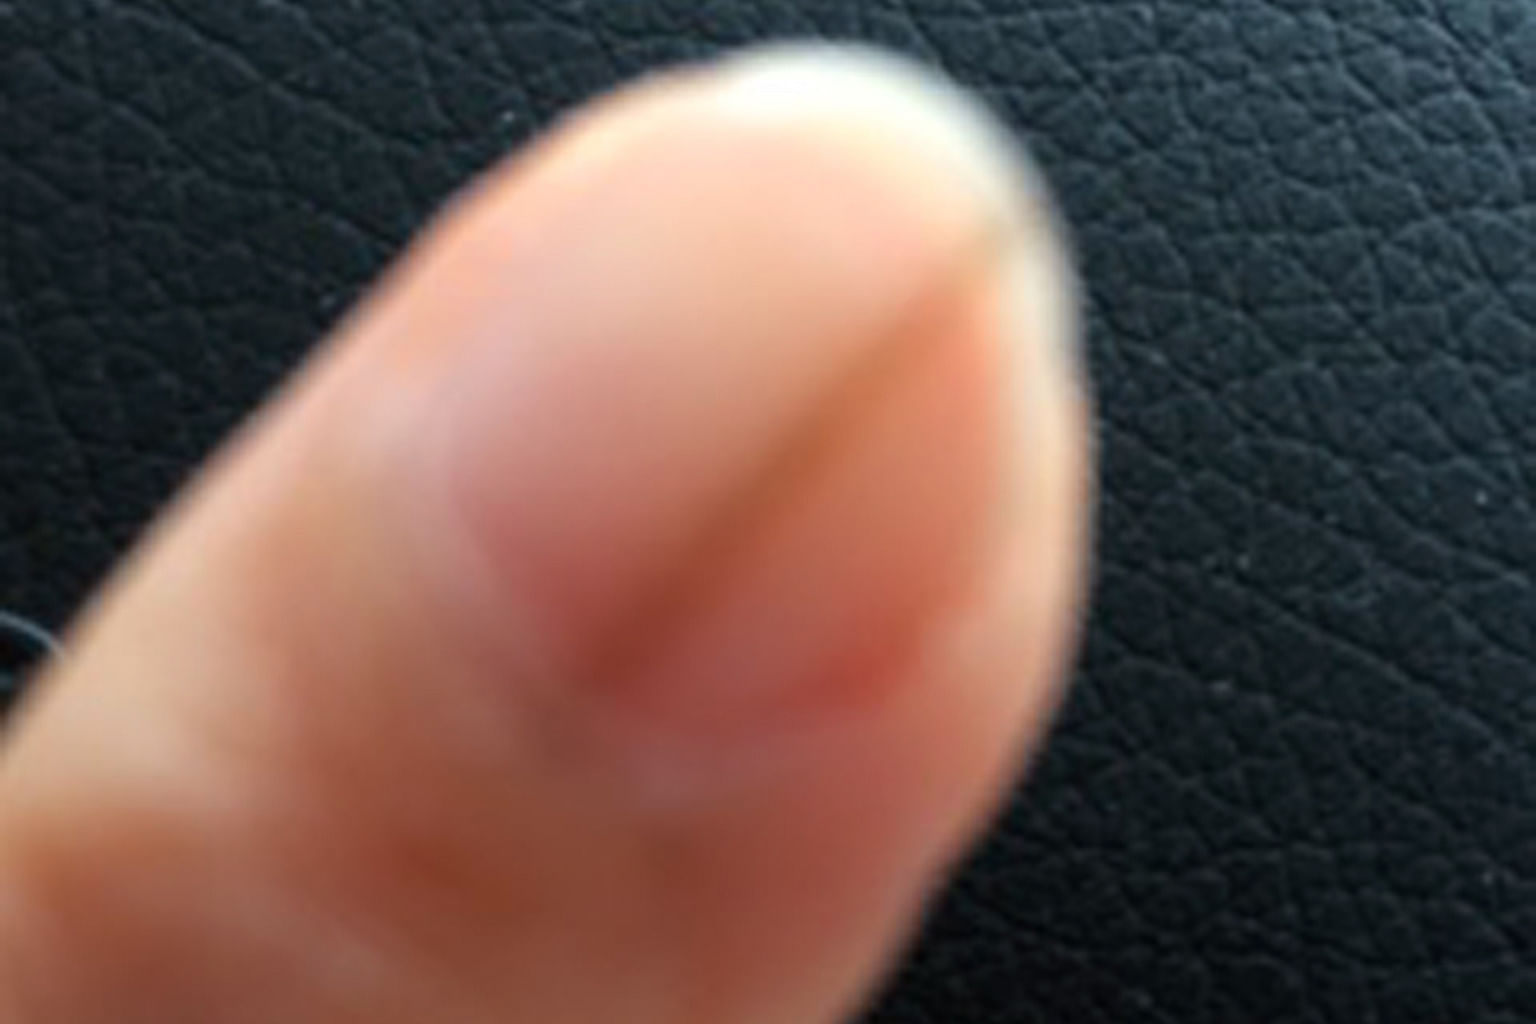 Monitor fingernail for changes to pigment pattern , Health News ...